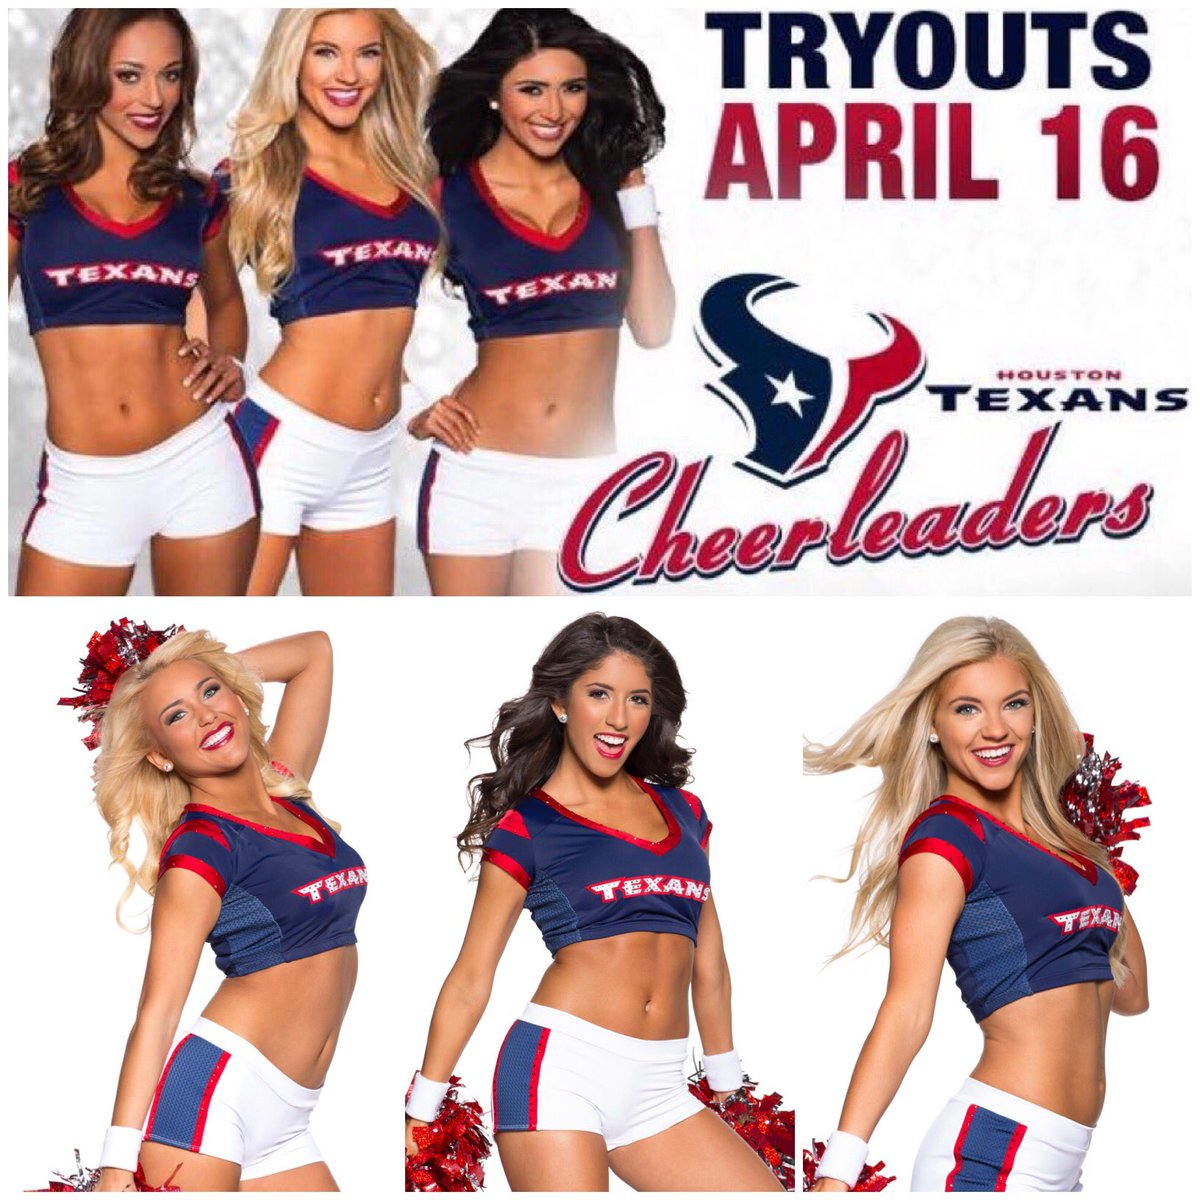 Today's a good day. @HTC_Megan, @HTC_AshleyR @HTC_Callie R coming 2 #DrinkHouston 2night. #HTCTryouts2016 #FinalFour https://t.co/poOLKGg8JK